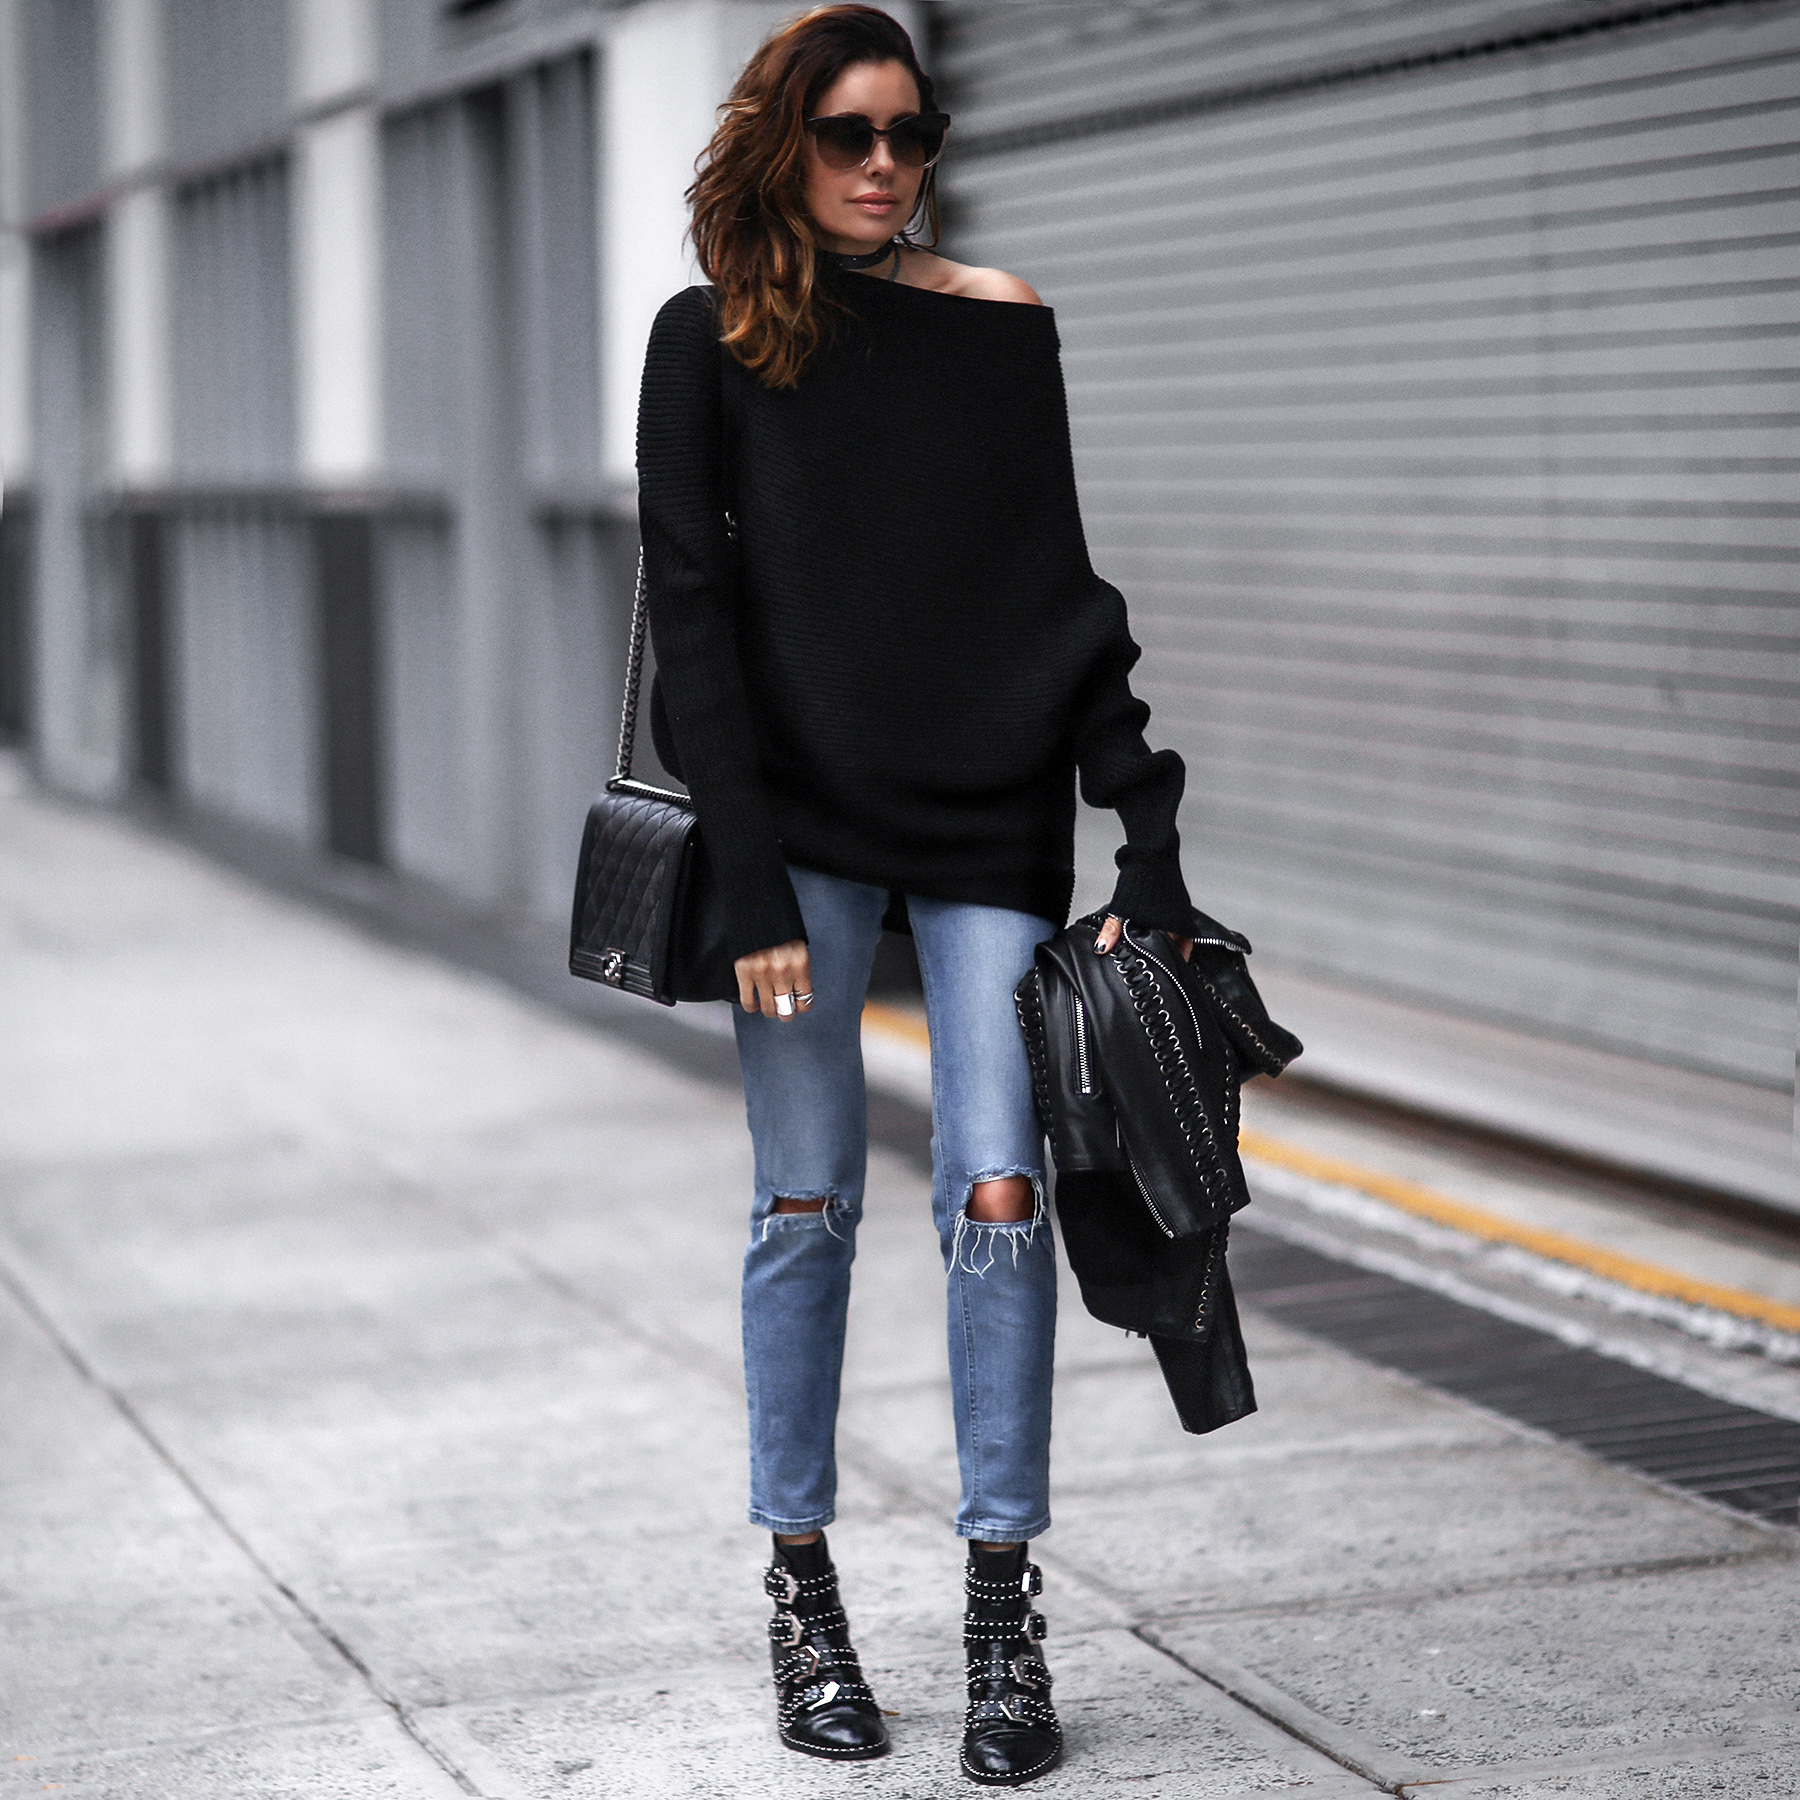 black off the shoulder sweater, ripped skinny jeans, black studded boots, black leather jacket, chanel bag